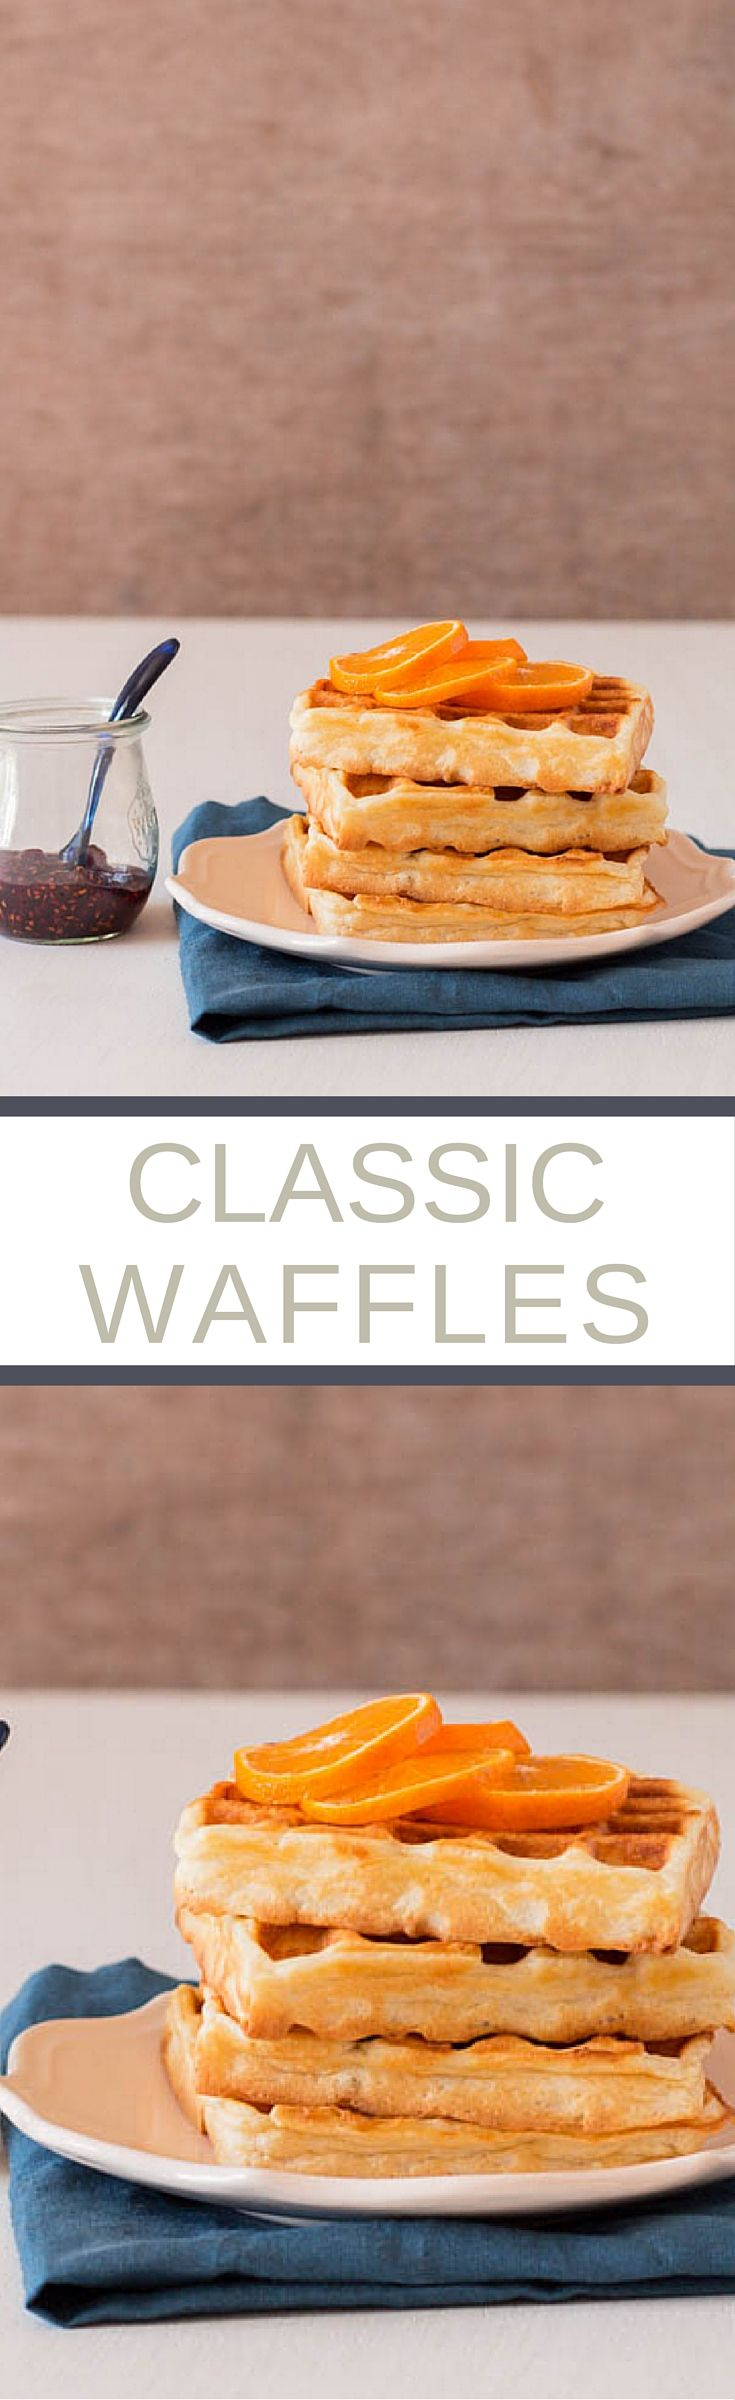 Classic Waffles Recipe | Recipes From A Pantry